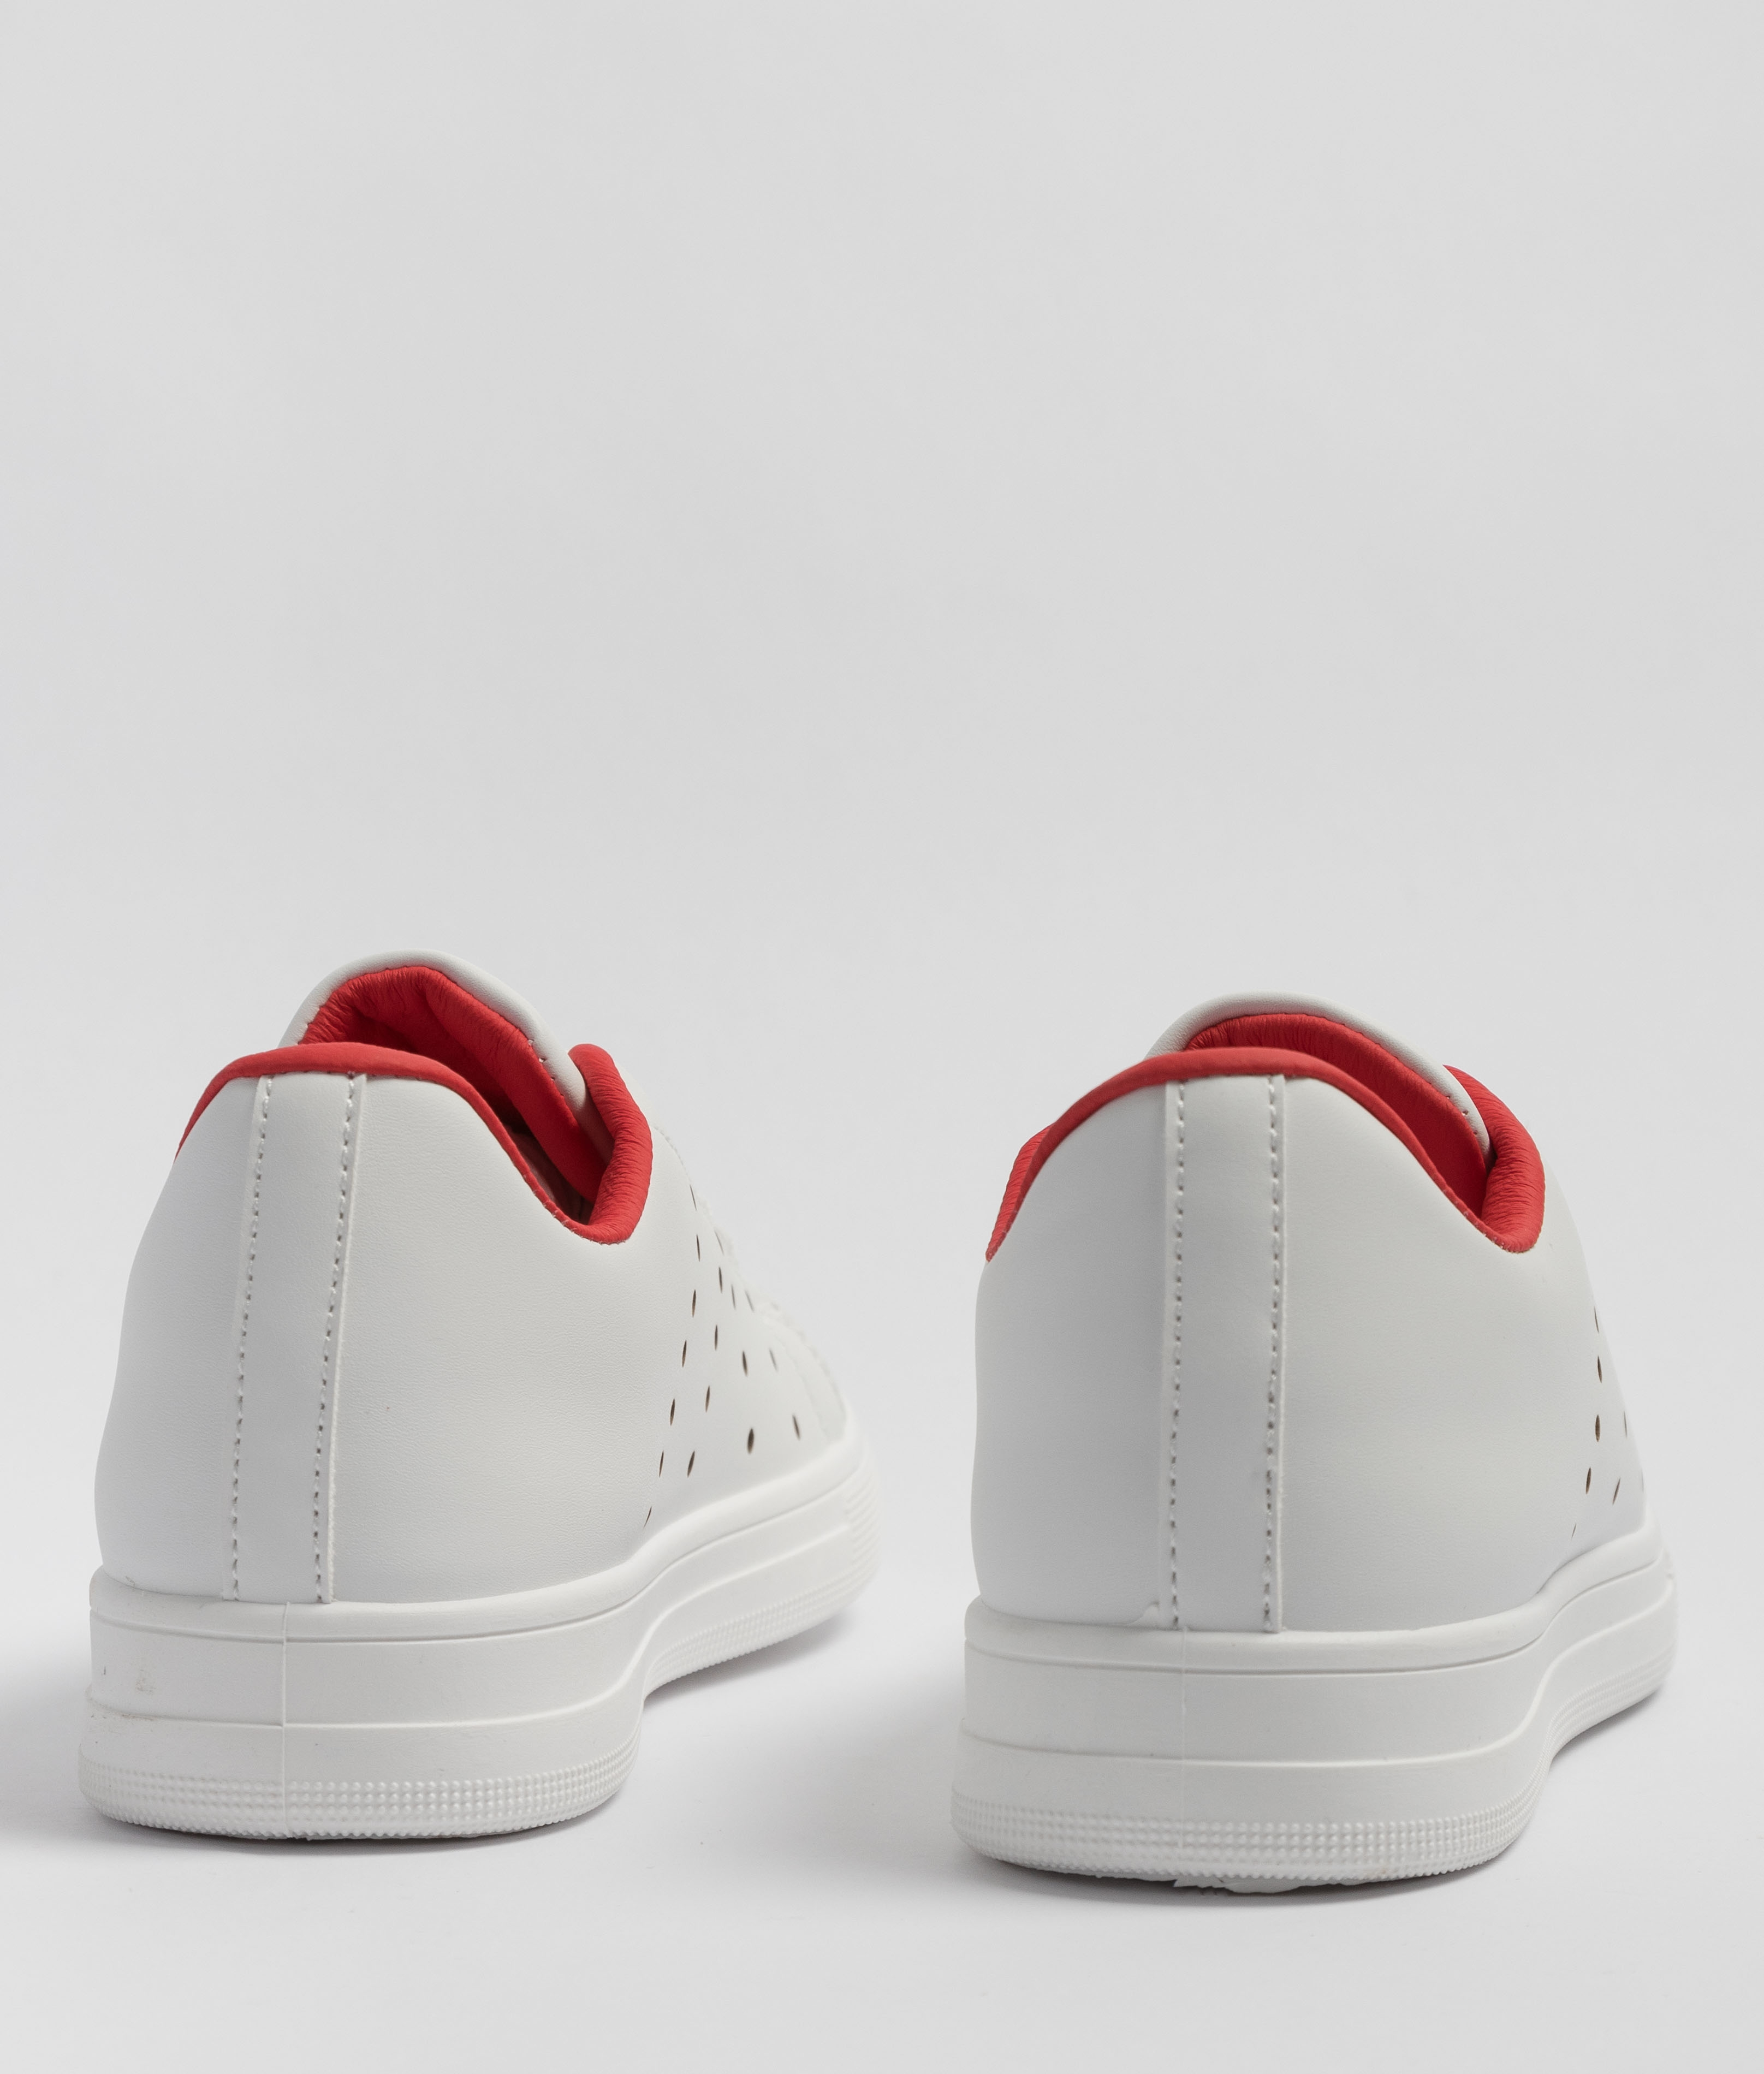 Sneakers Atelier - Rosso